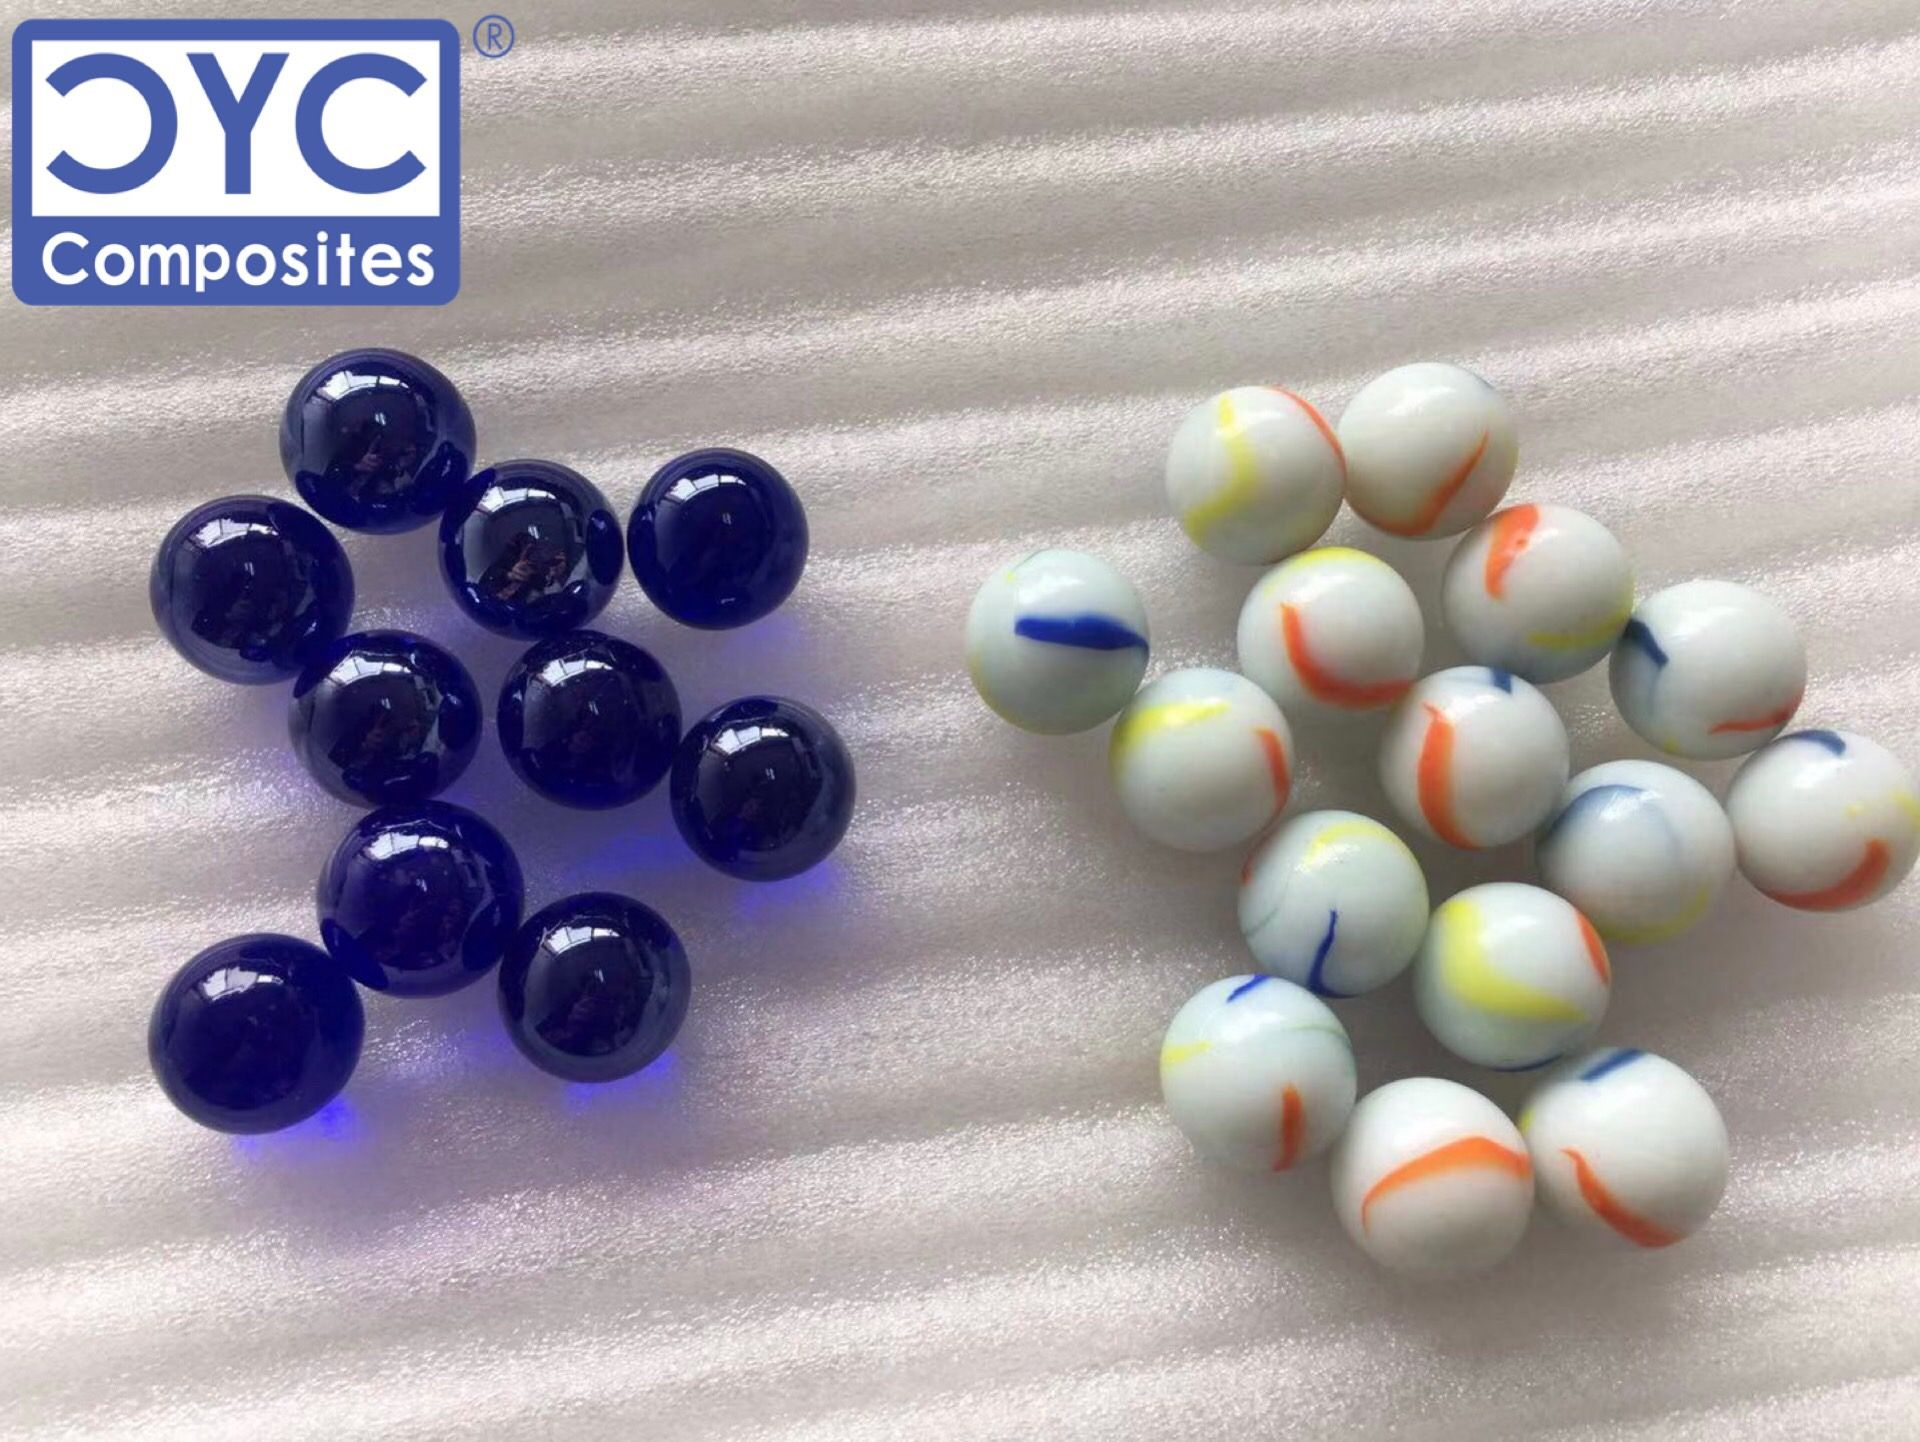 Cyc Composites Glass Marble Balls Are Designed For Children Playing